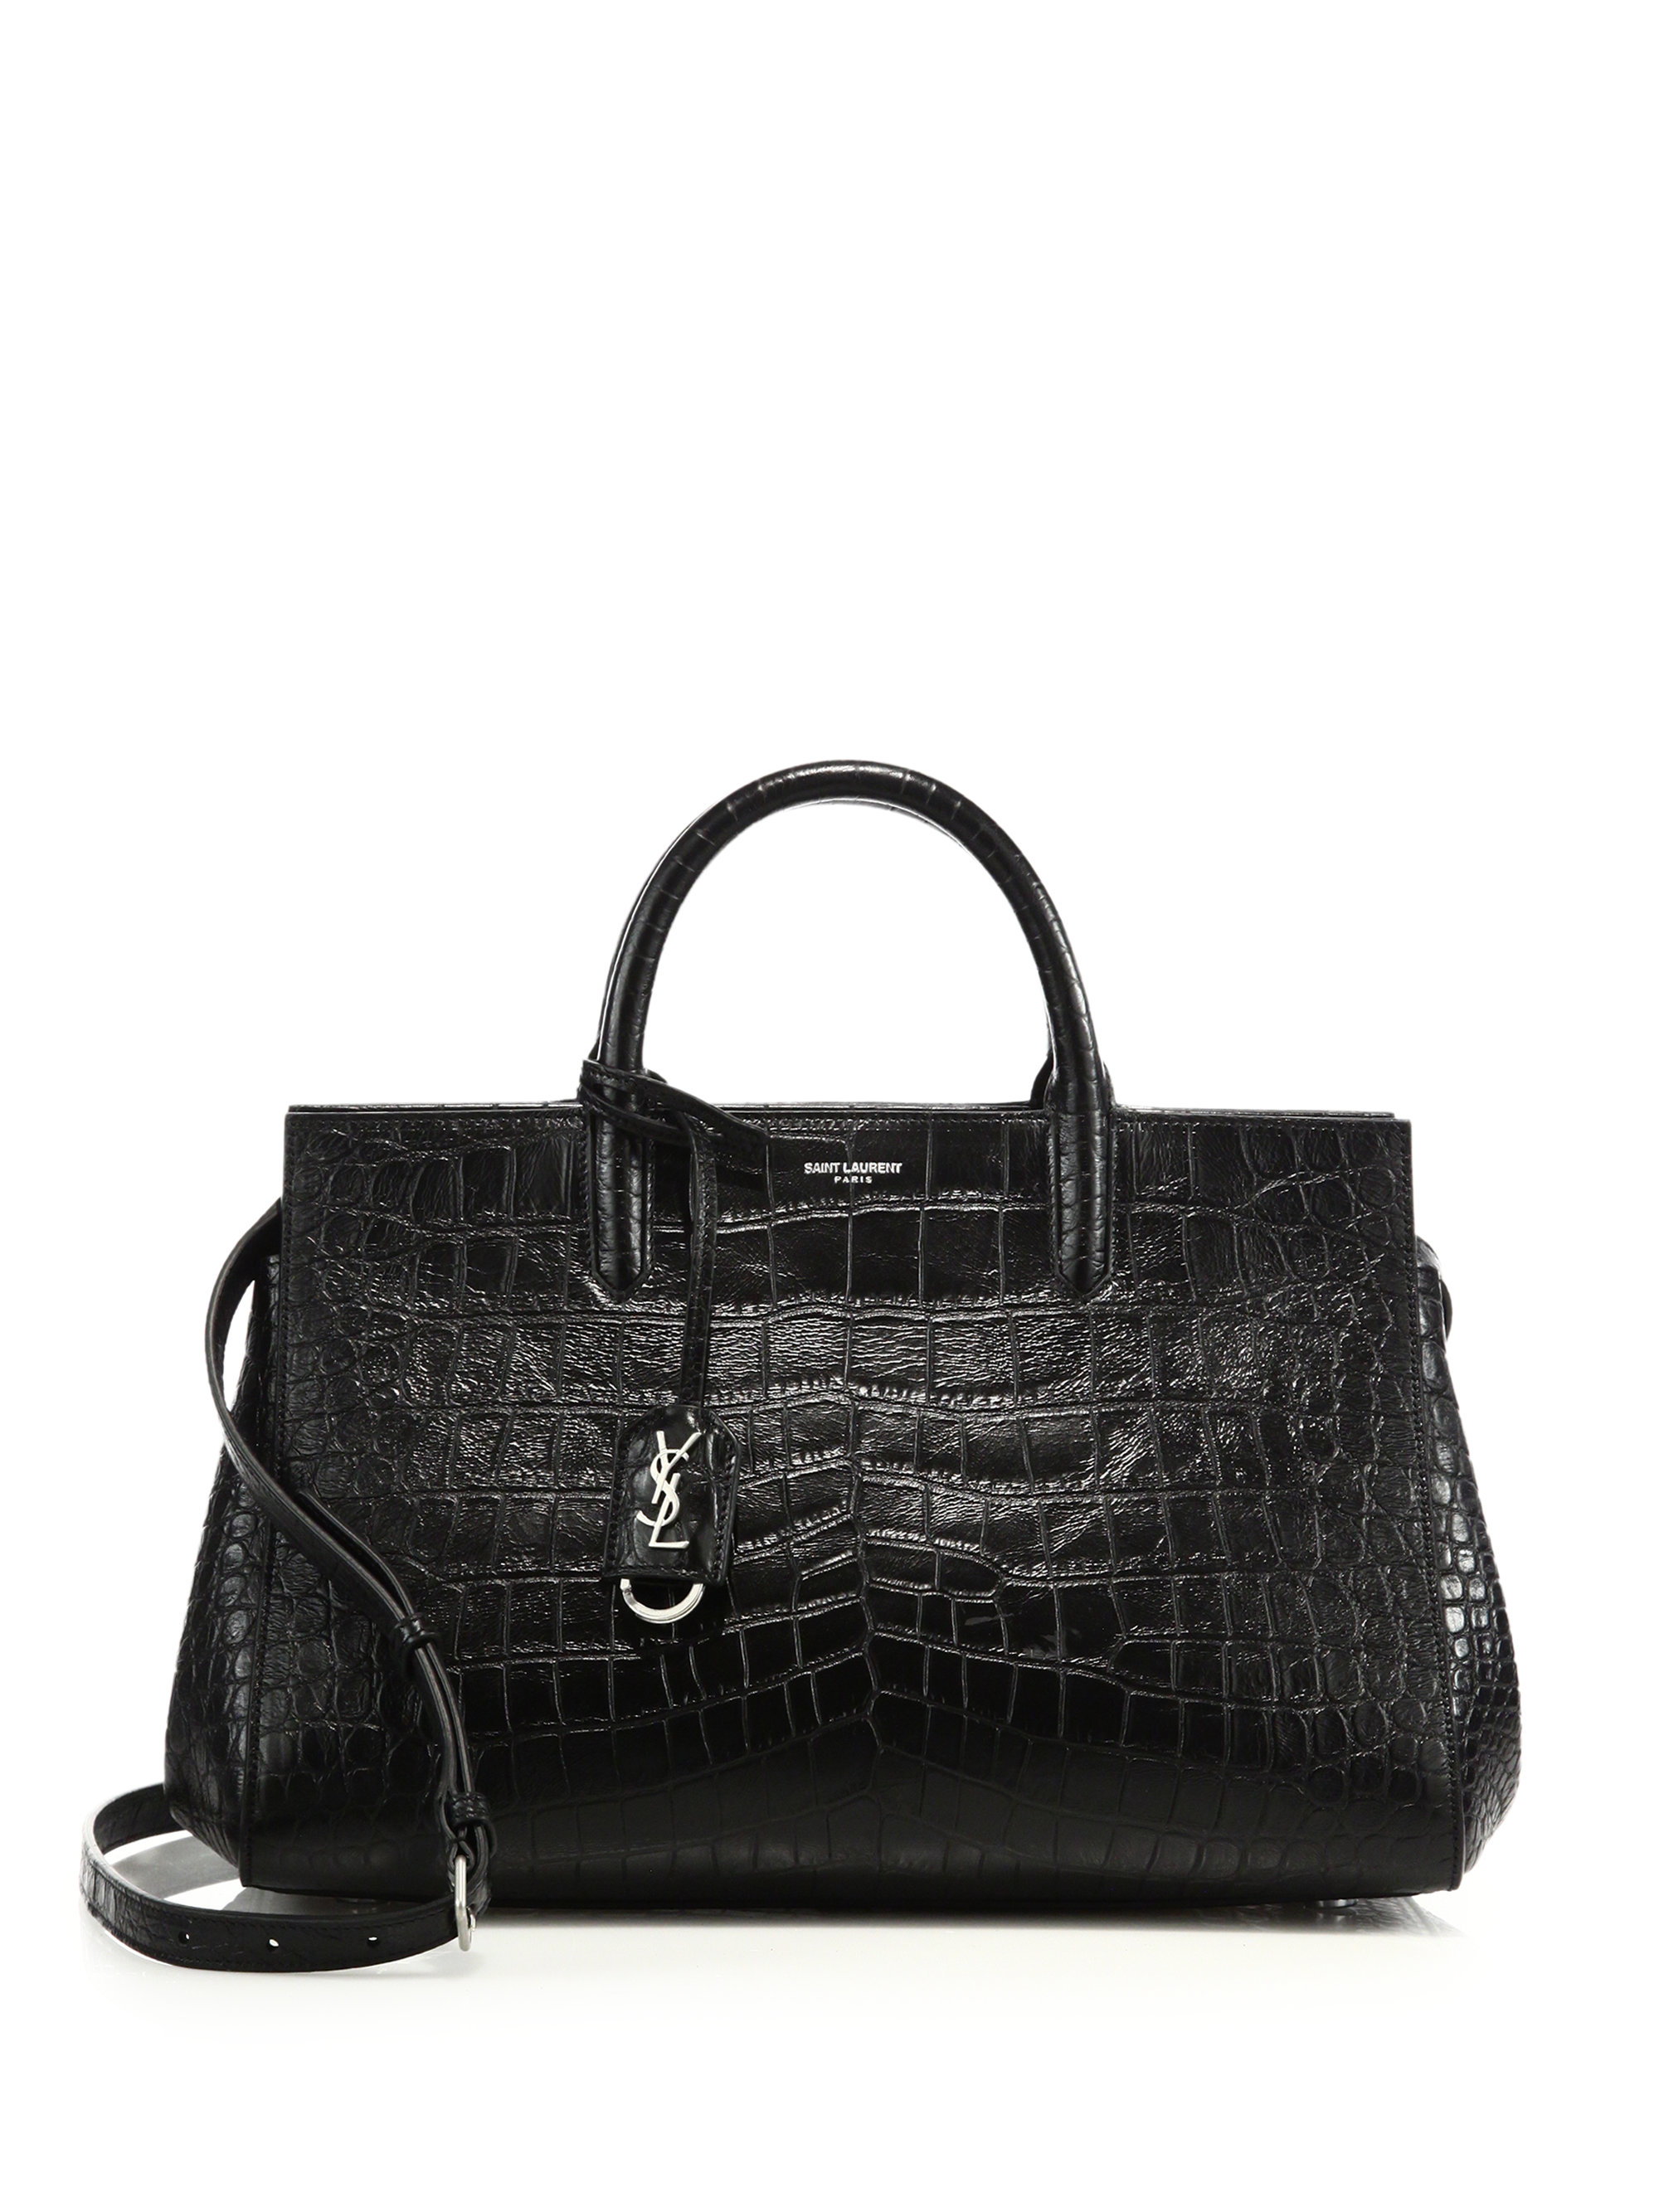 Small Cabas Rive Gauche Bag In Black Crocodile Embossed